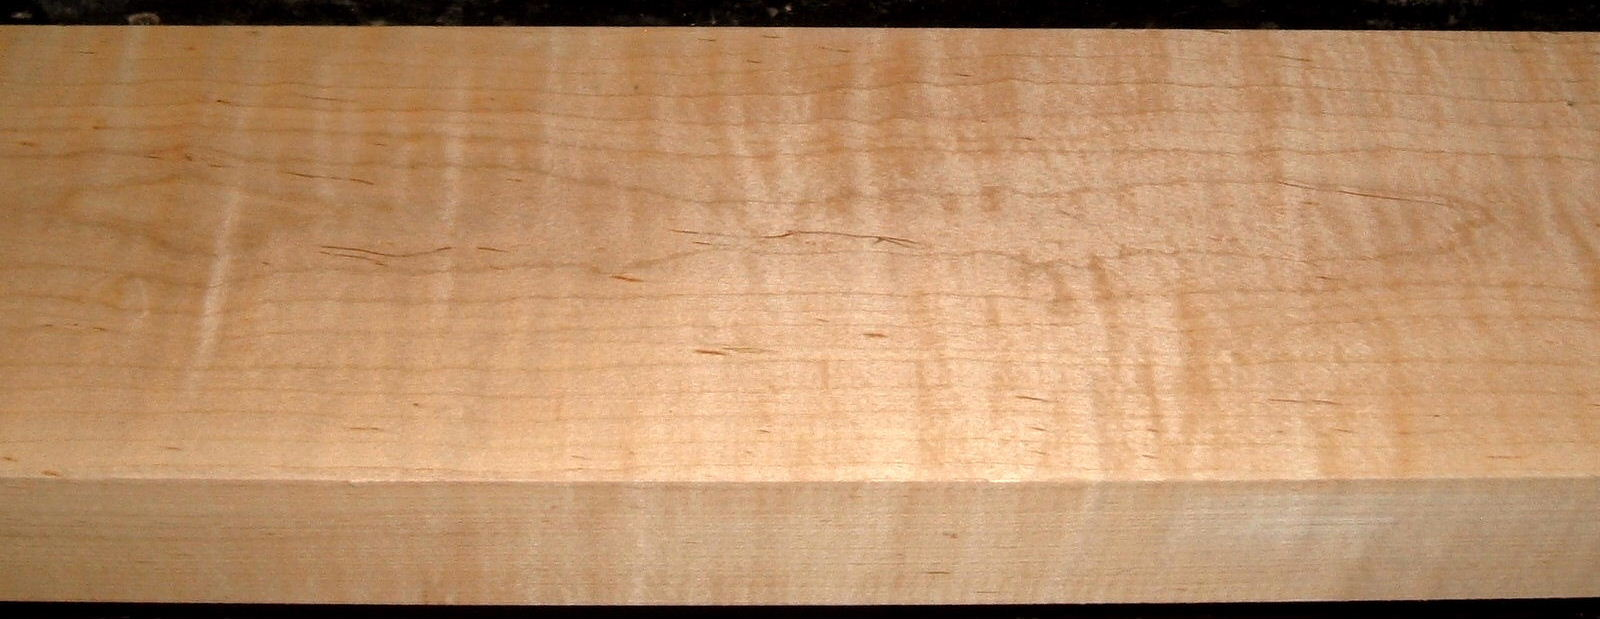 M2002-111, 1-3/4x5-3/4x42, Luthier Figure Curly Tiger Maple